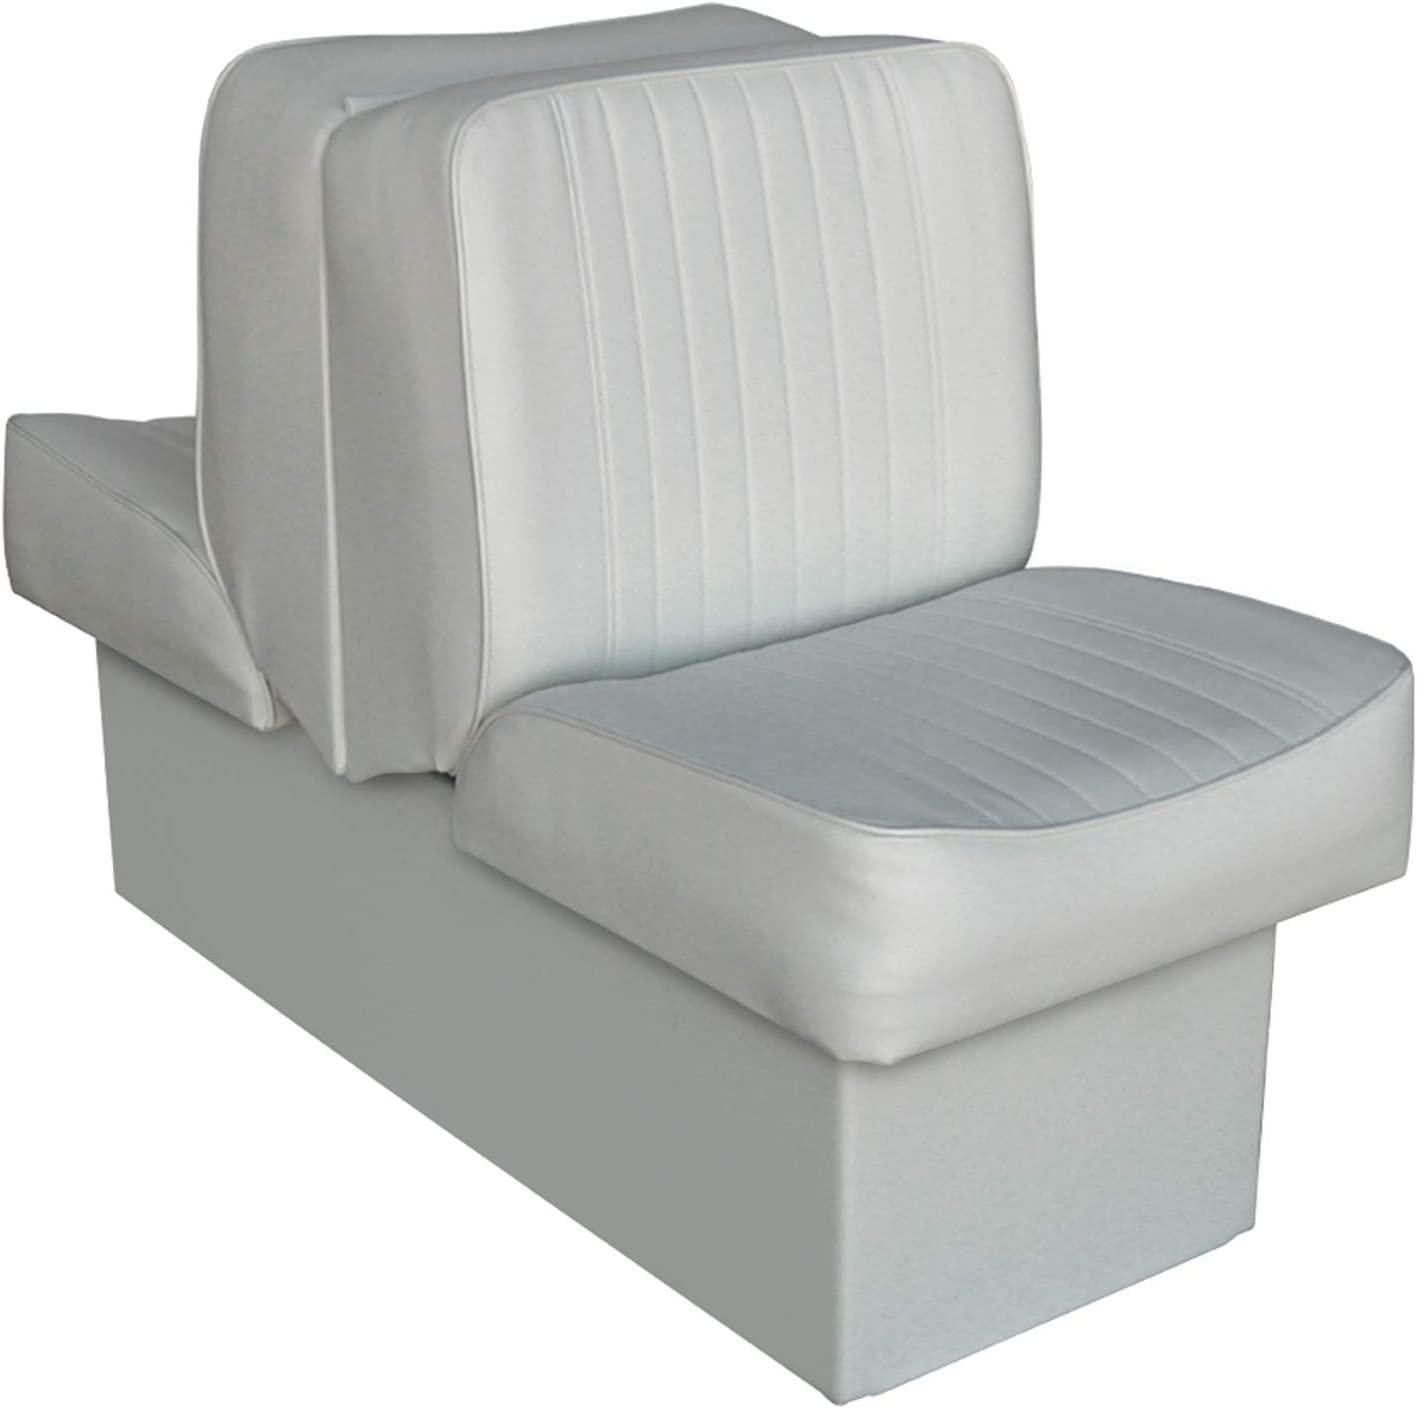 Wise 8WD707P-1- Deluxe Lounge Seat